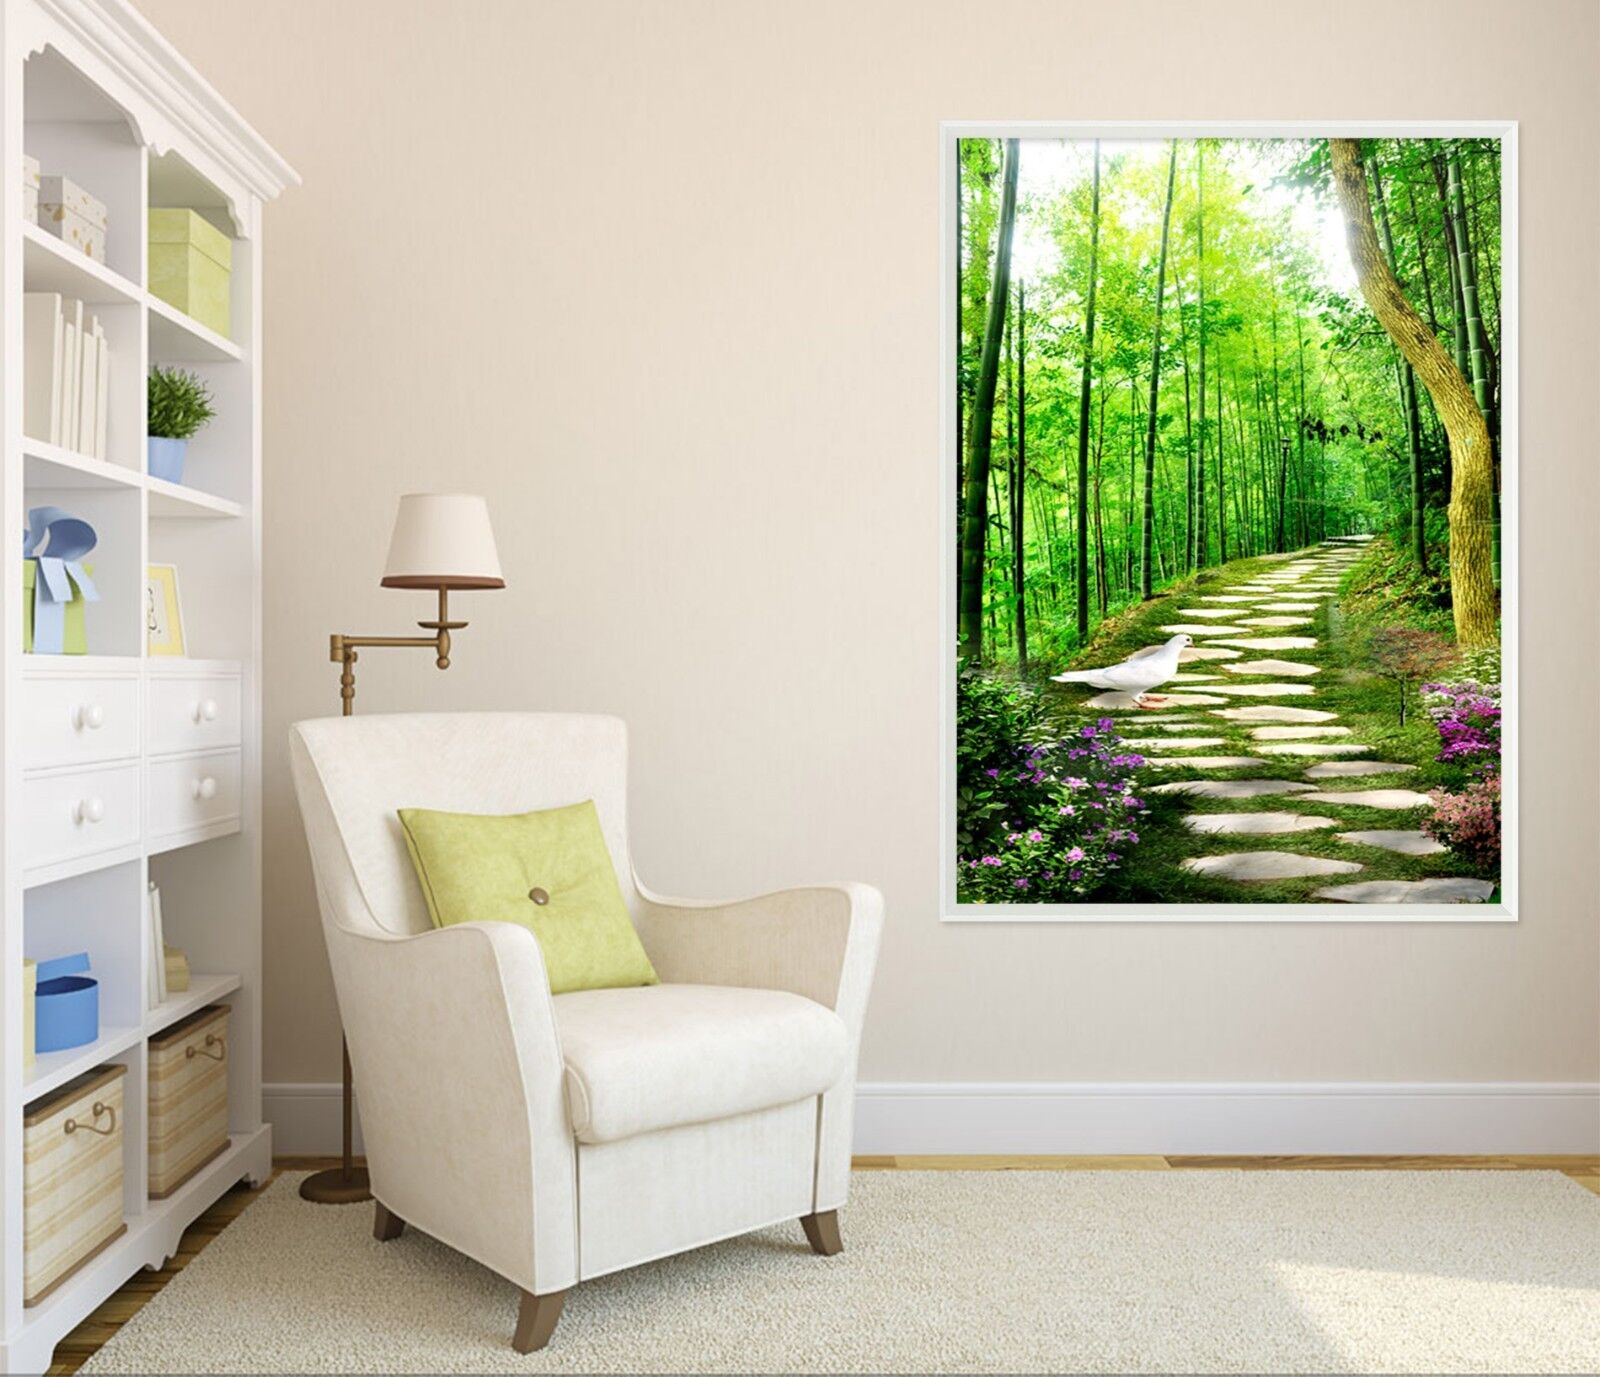 3D Bamboo Forest Stone 6 Framed Poster Home Decor Print Painting Art AJ AU